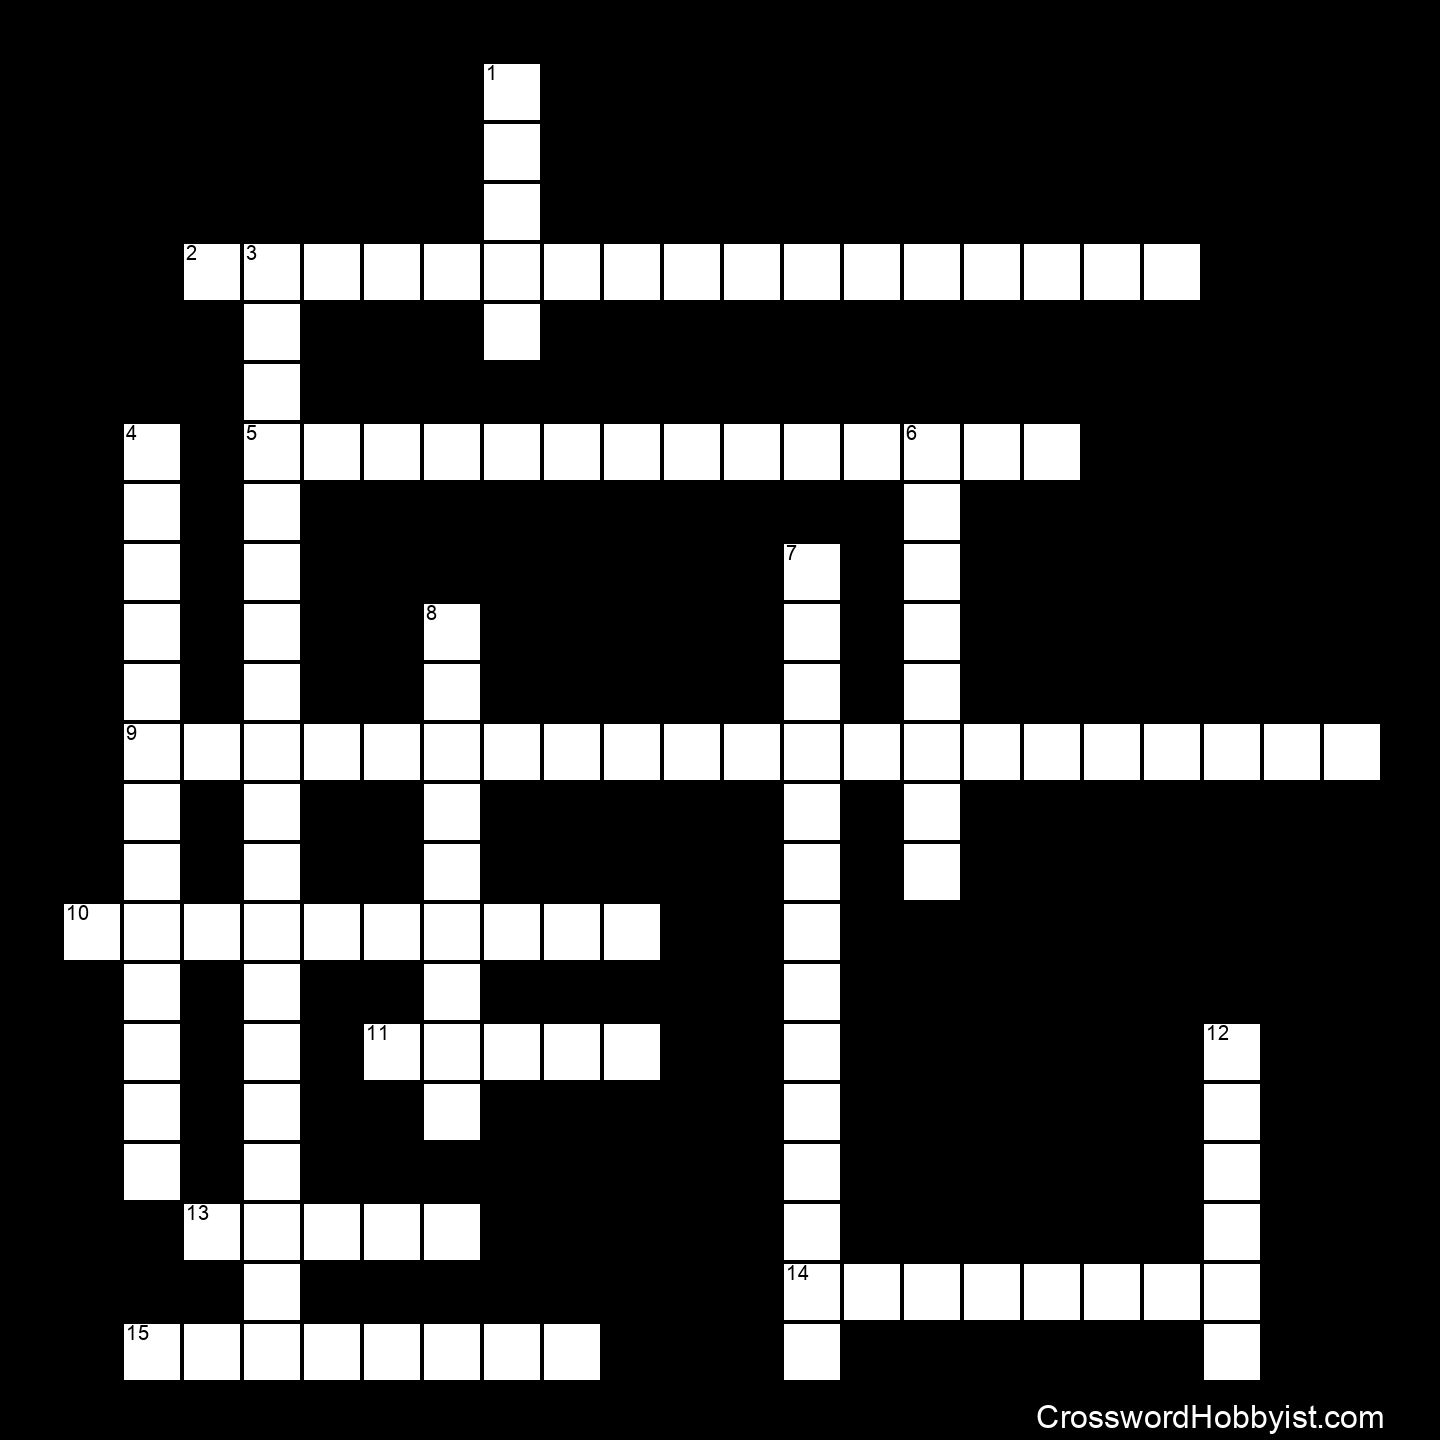 Servsafe Chapter 8 Crossword